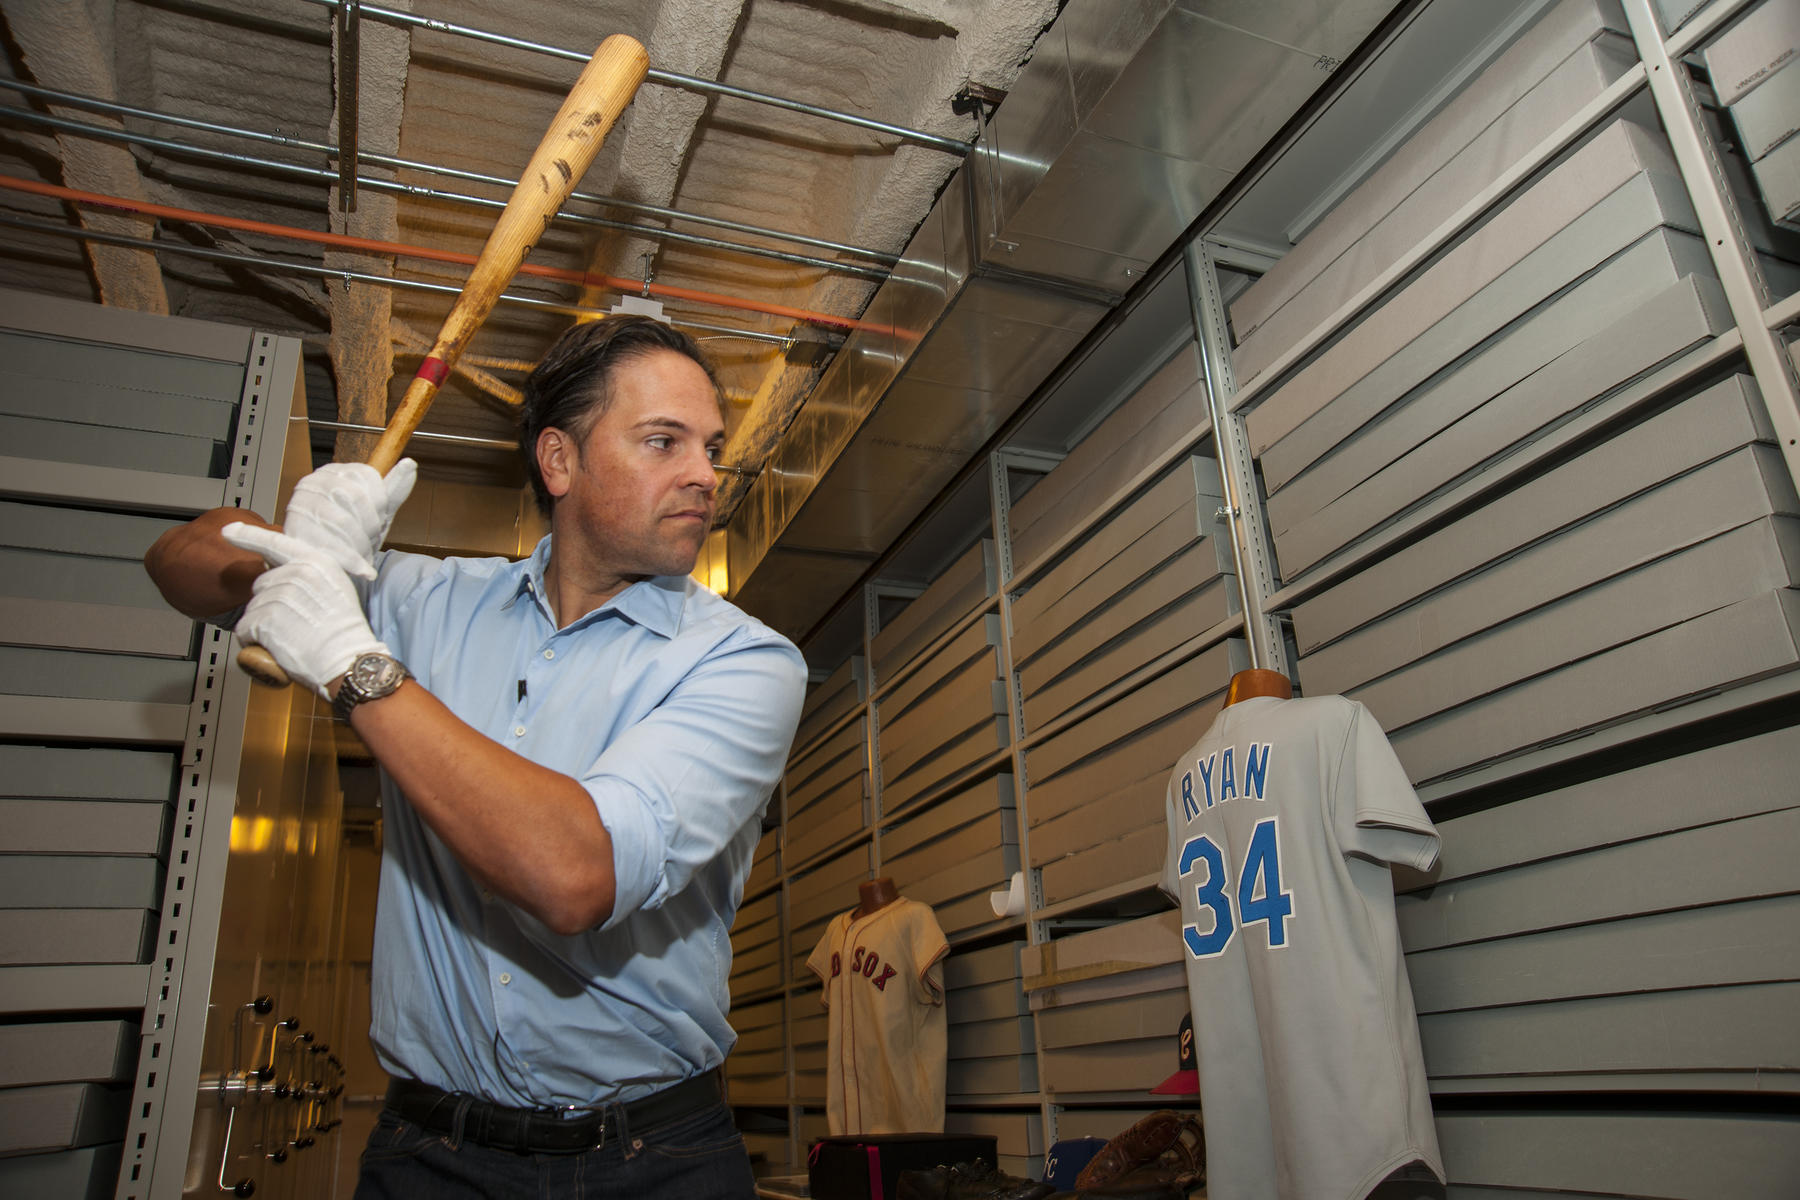 Class of 2016 electee Mike Piazza gets into a batter's stance during his Hall of Fame Orientation Visit on March 8, 2016. Piazza is holding the bat that his childhood hero, Hall of Famer Mike Schmidt, used to hit his 536th home run and tie fellow Hall of Famer Mickey Mantle on the all-time career homer list. (Milo Stewart, Jr. / National Baseball Hall of Fame)